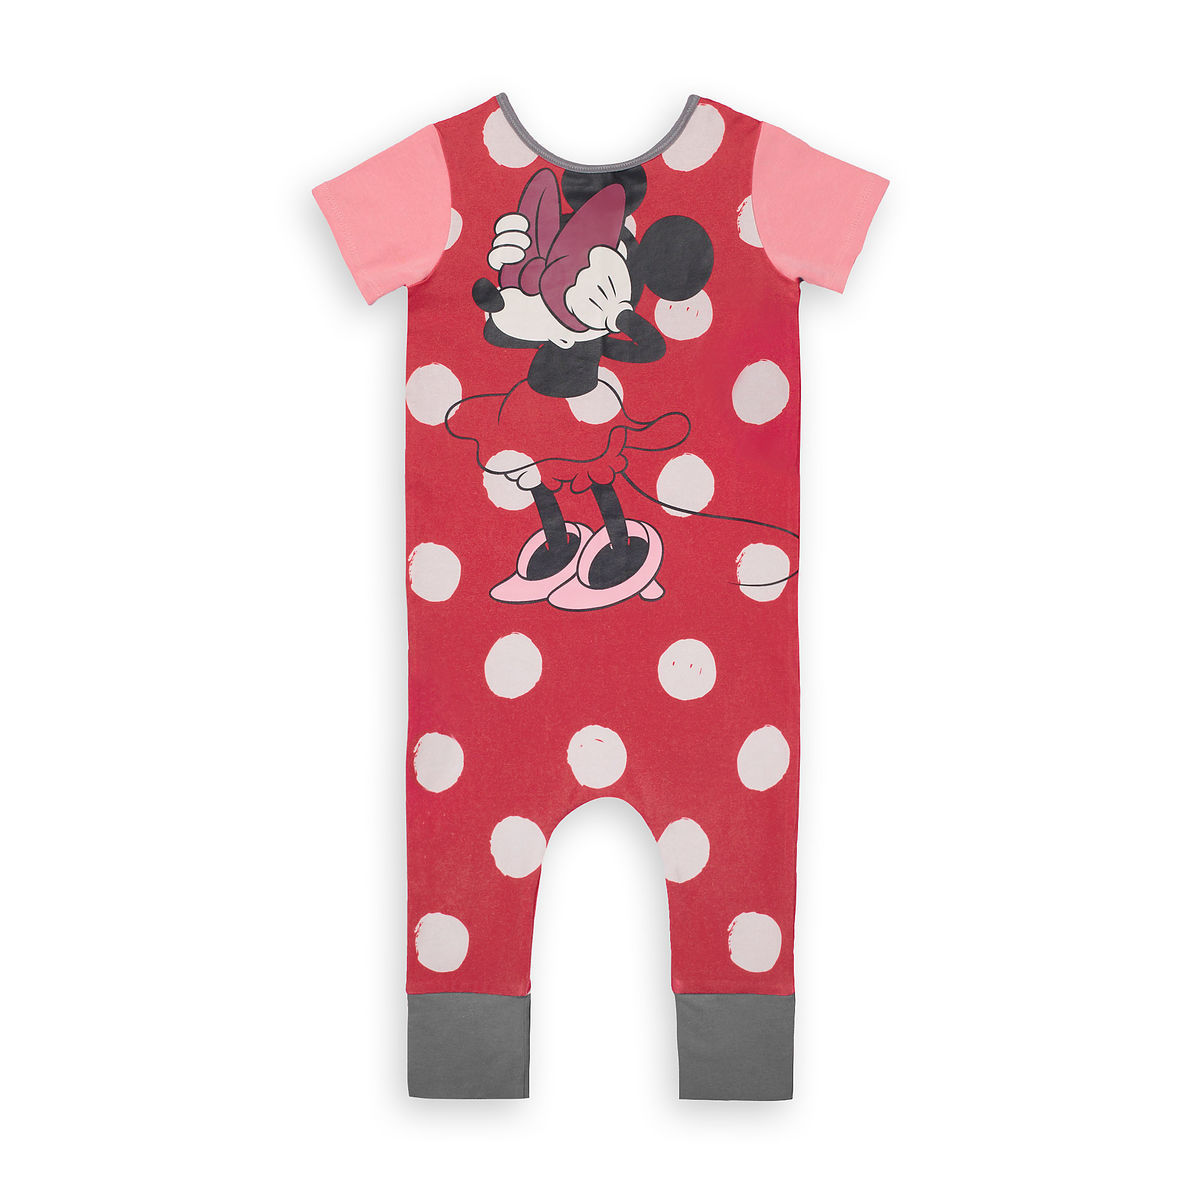 Product Image Of Minnie Mouse Polka Dot Romper For Baby And Toddler By Rags 1